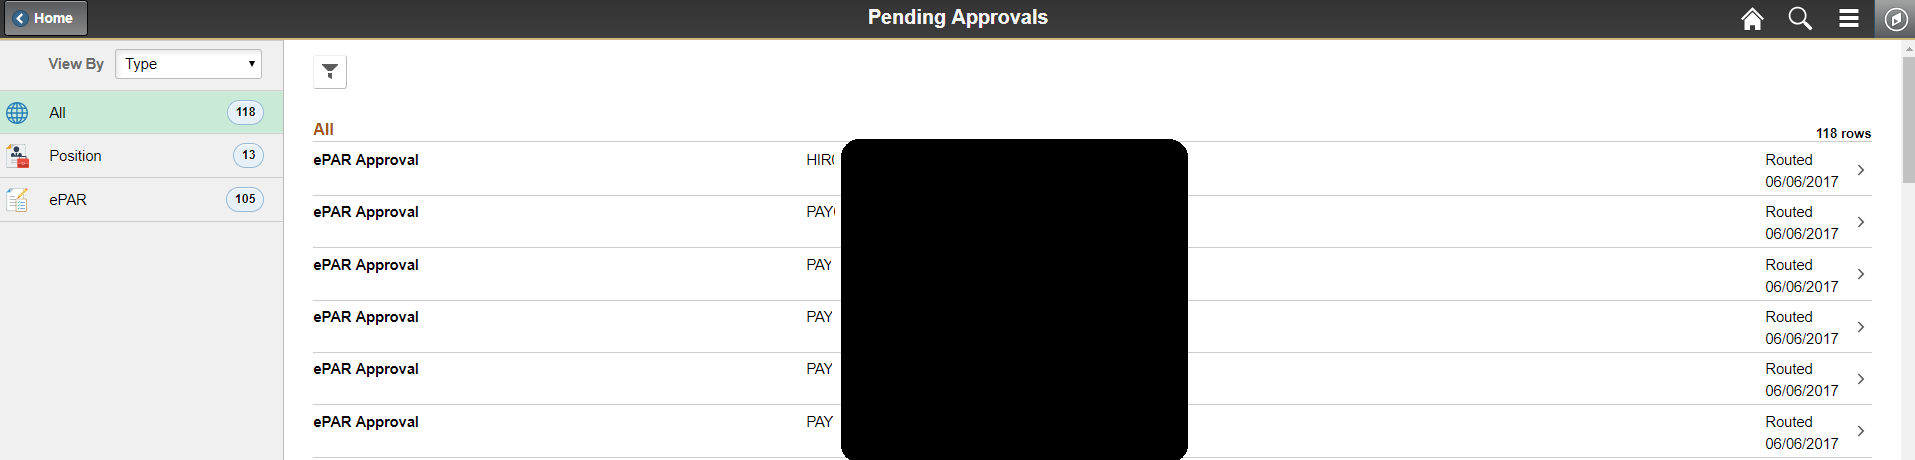 Pending Approvals